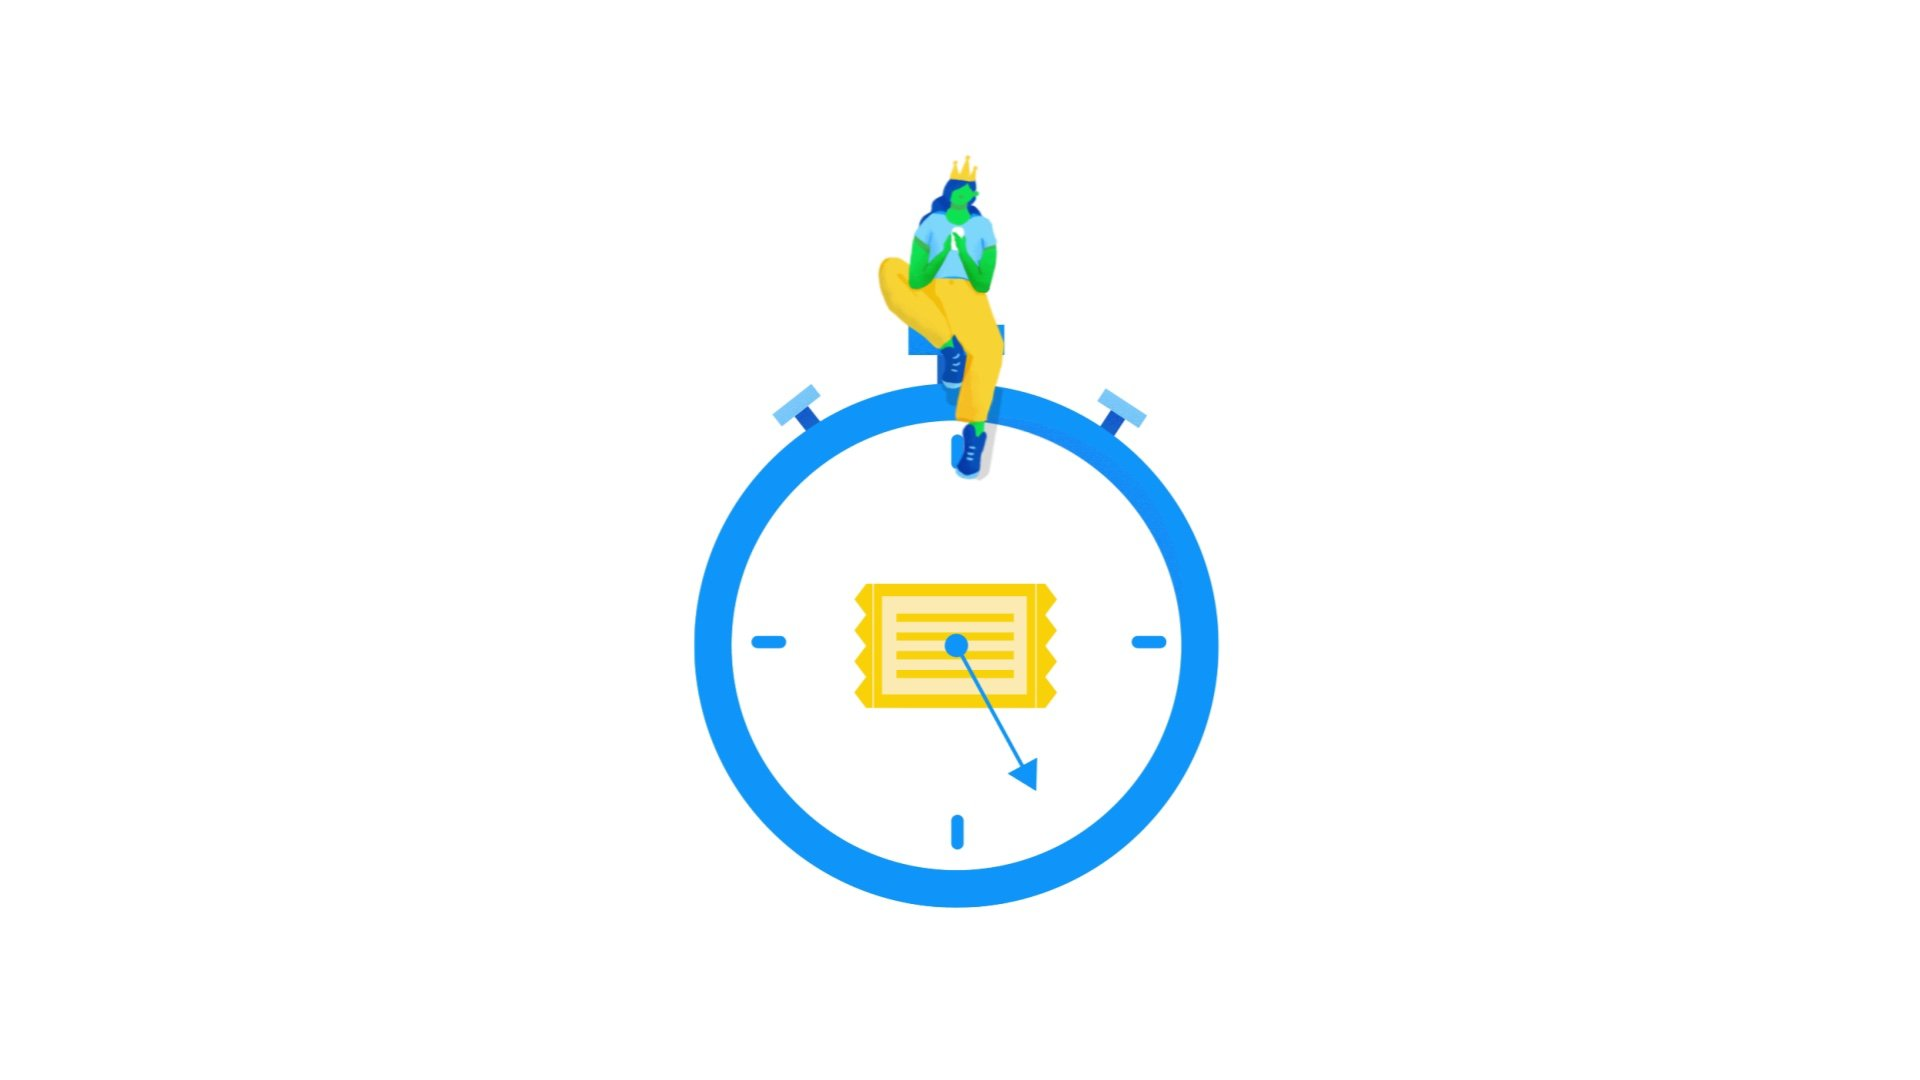 illustration for an animation of Apigee, a Google Cloud Service. It shows a girl on top of a clock